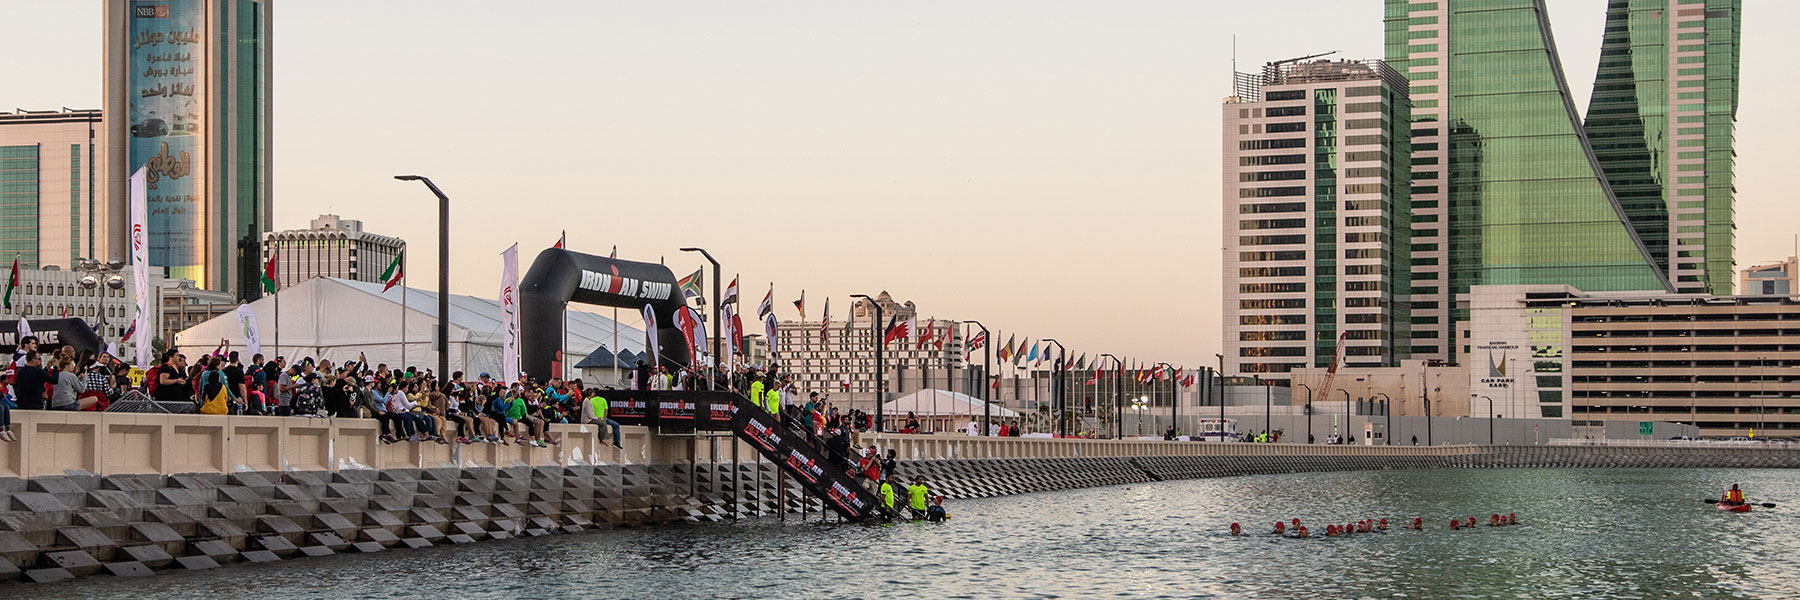 """IRONMAN 70.3 Bahrain athletes are in the water in front of """"The Avenues"""" in Manama and wait for the signal of the swim start, while people are watching"""